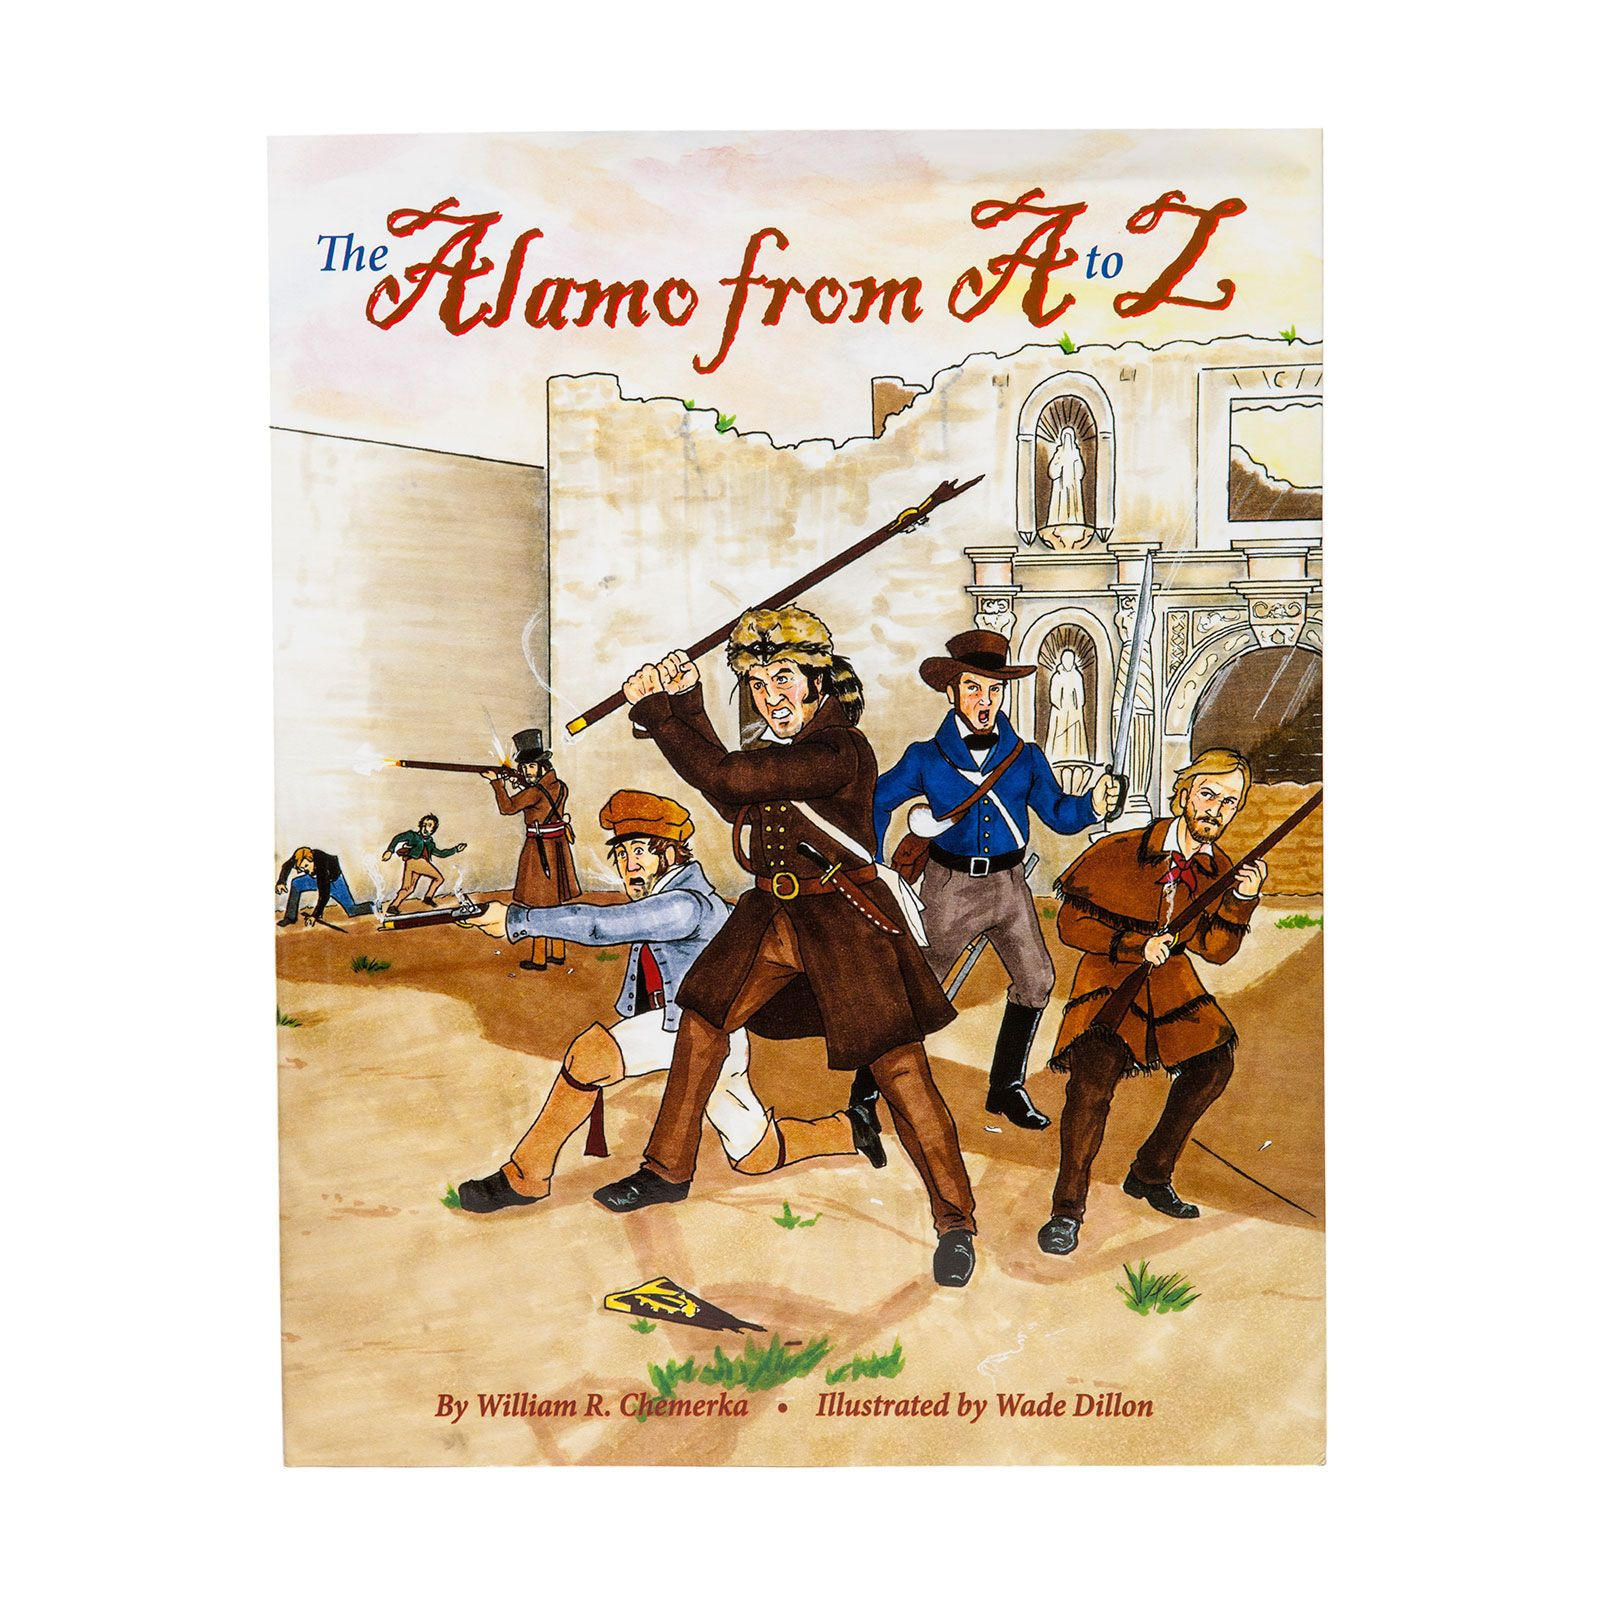 The Alamo from A to Z